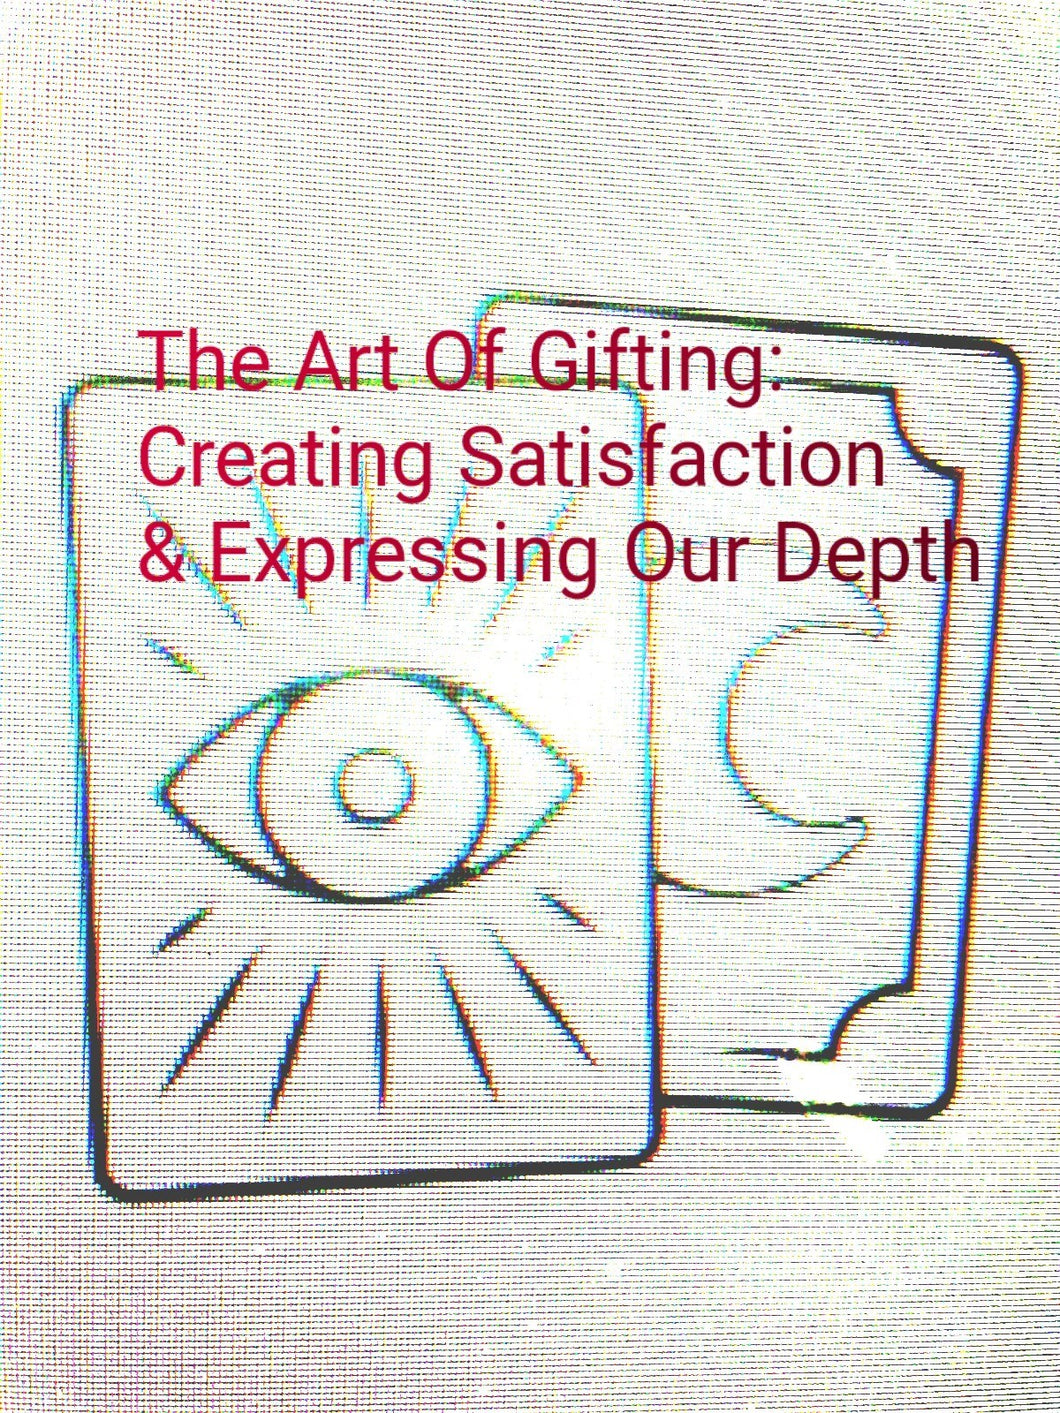 The Art of Gifting: Creating Satisfaction & Expressing Our Depth (Weds)